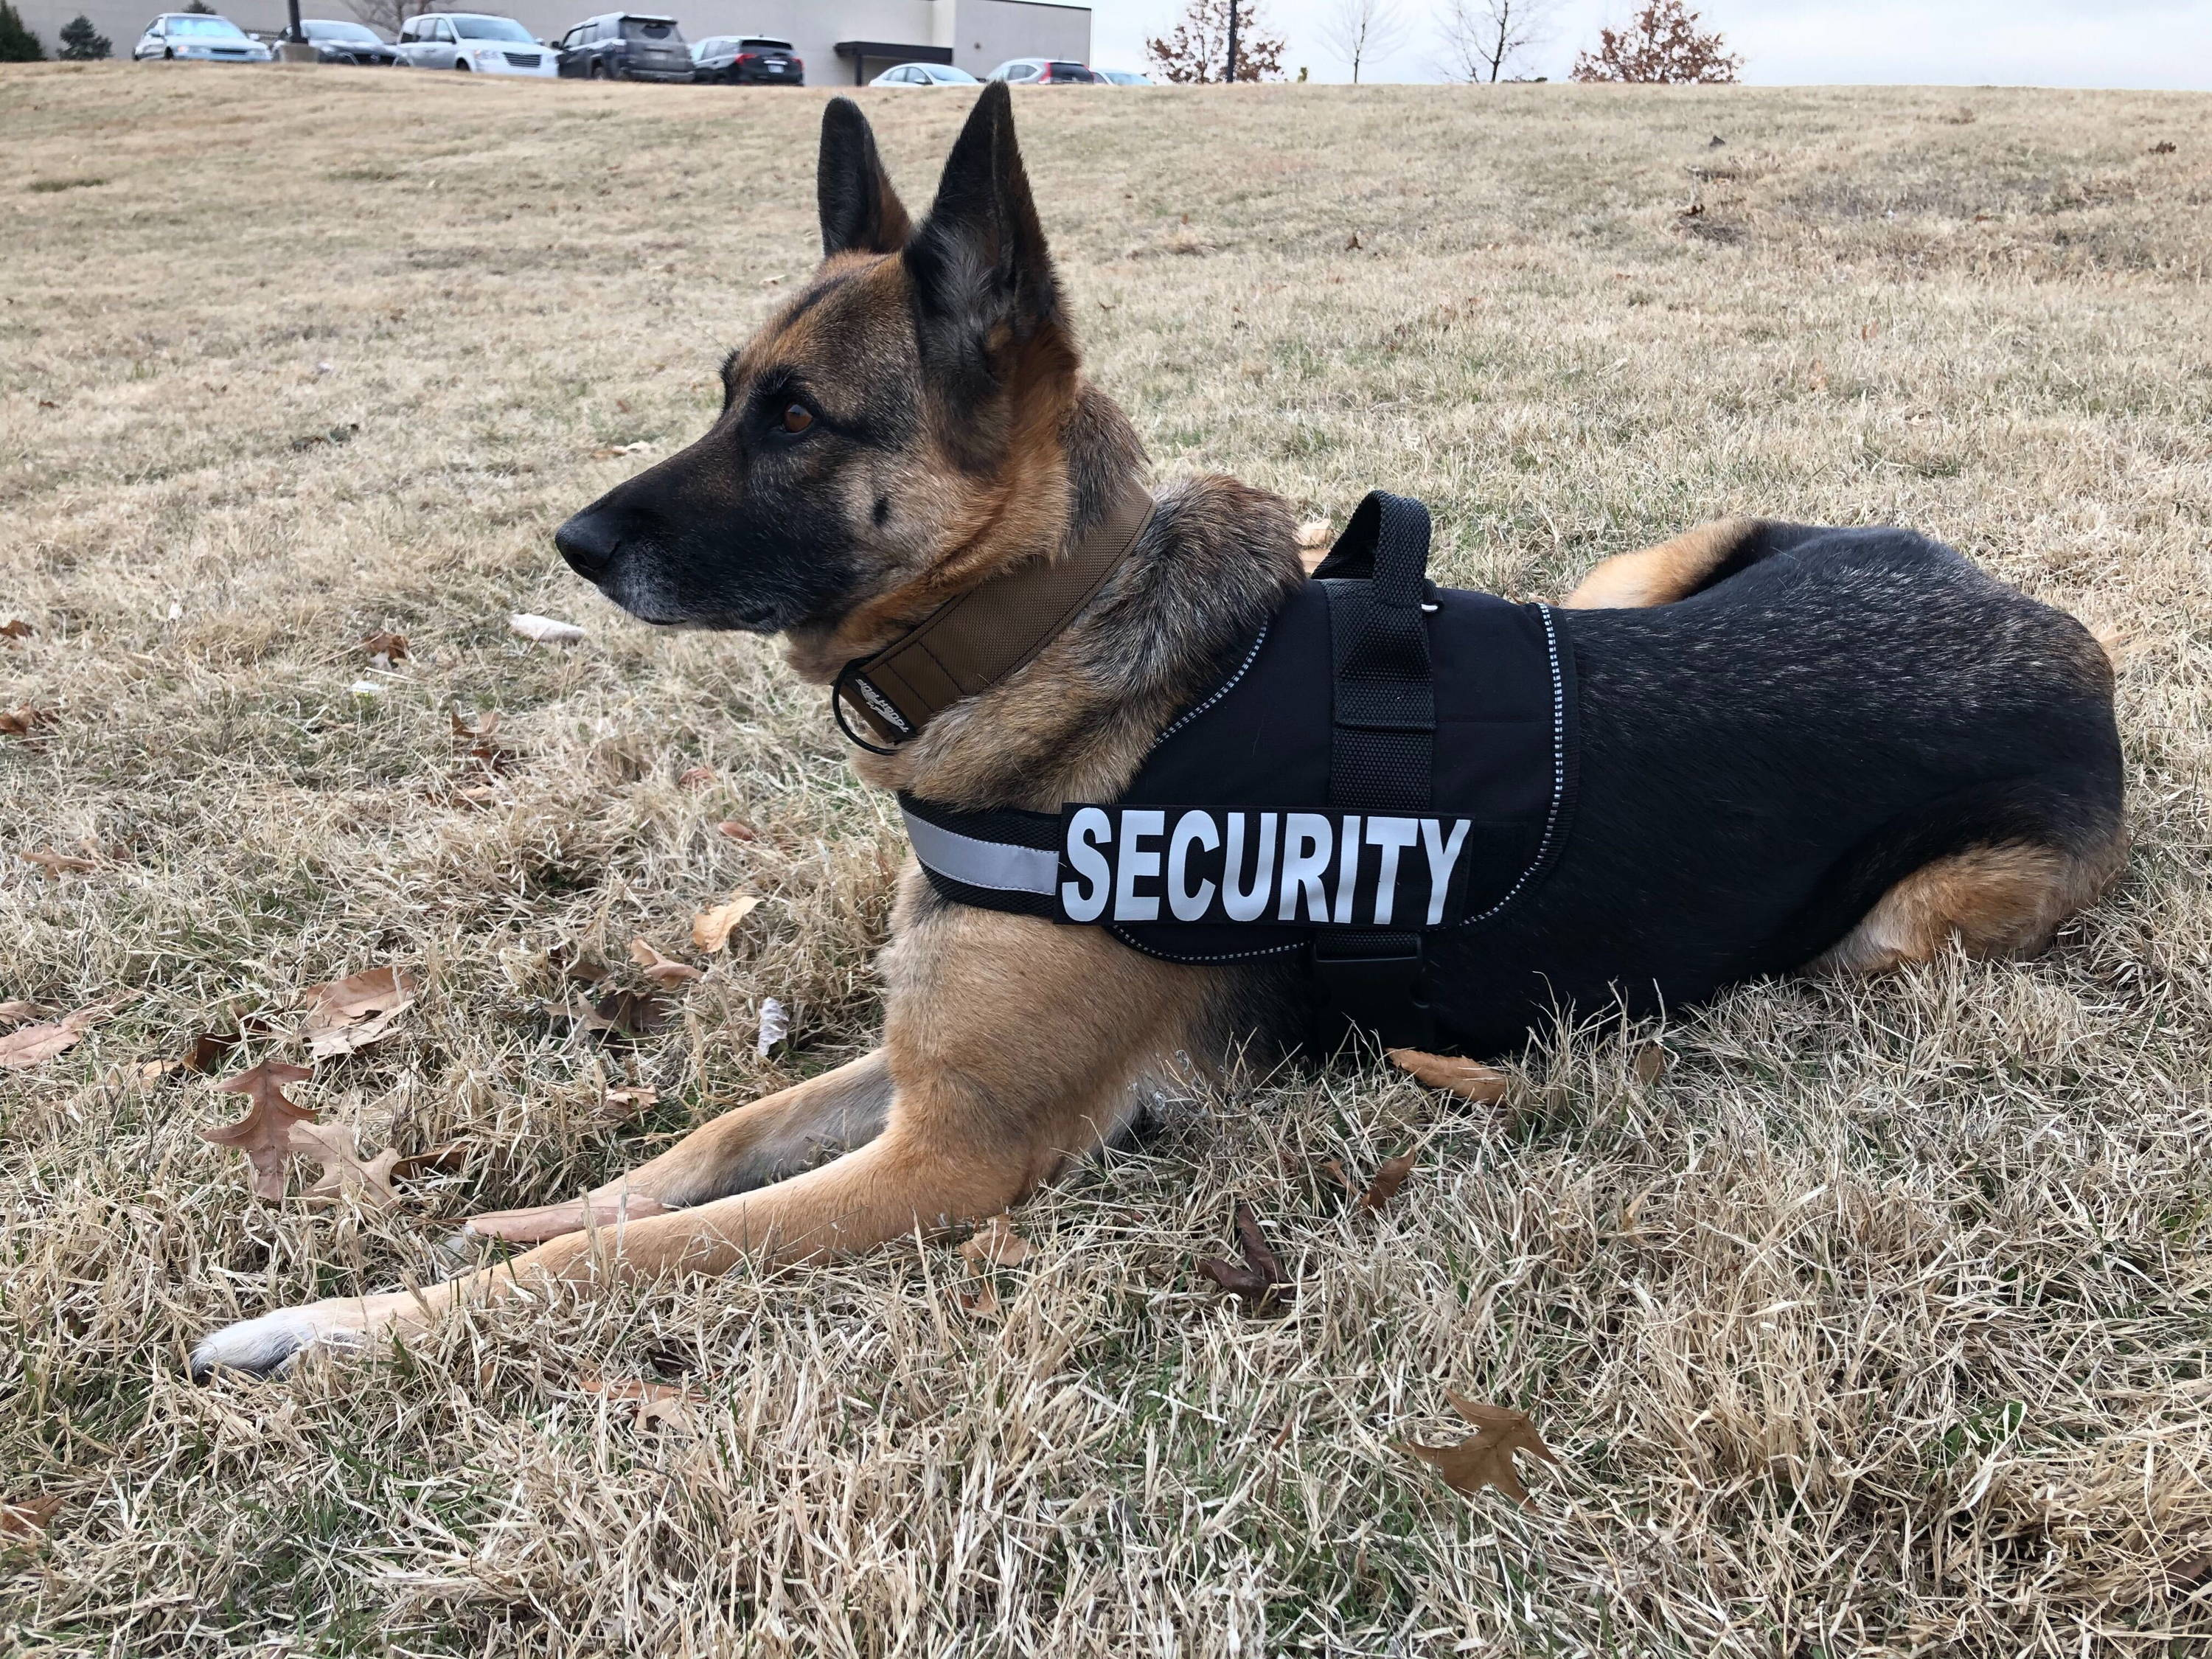 German shepard in a tactical security vest